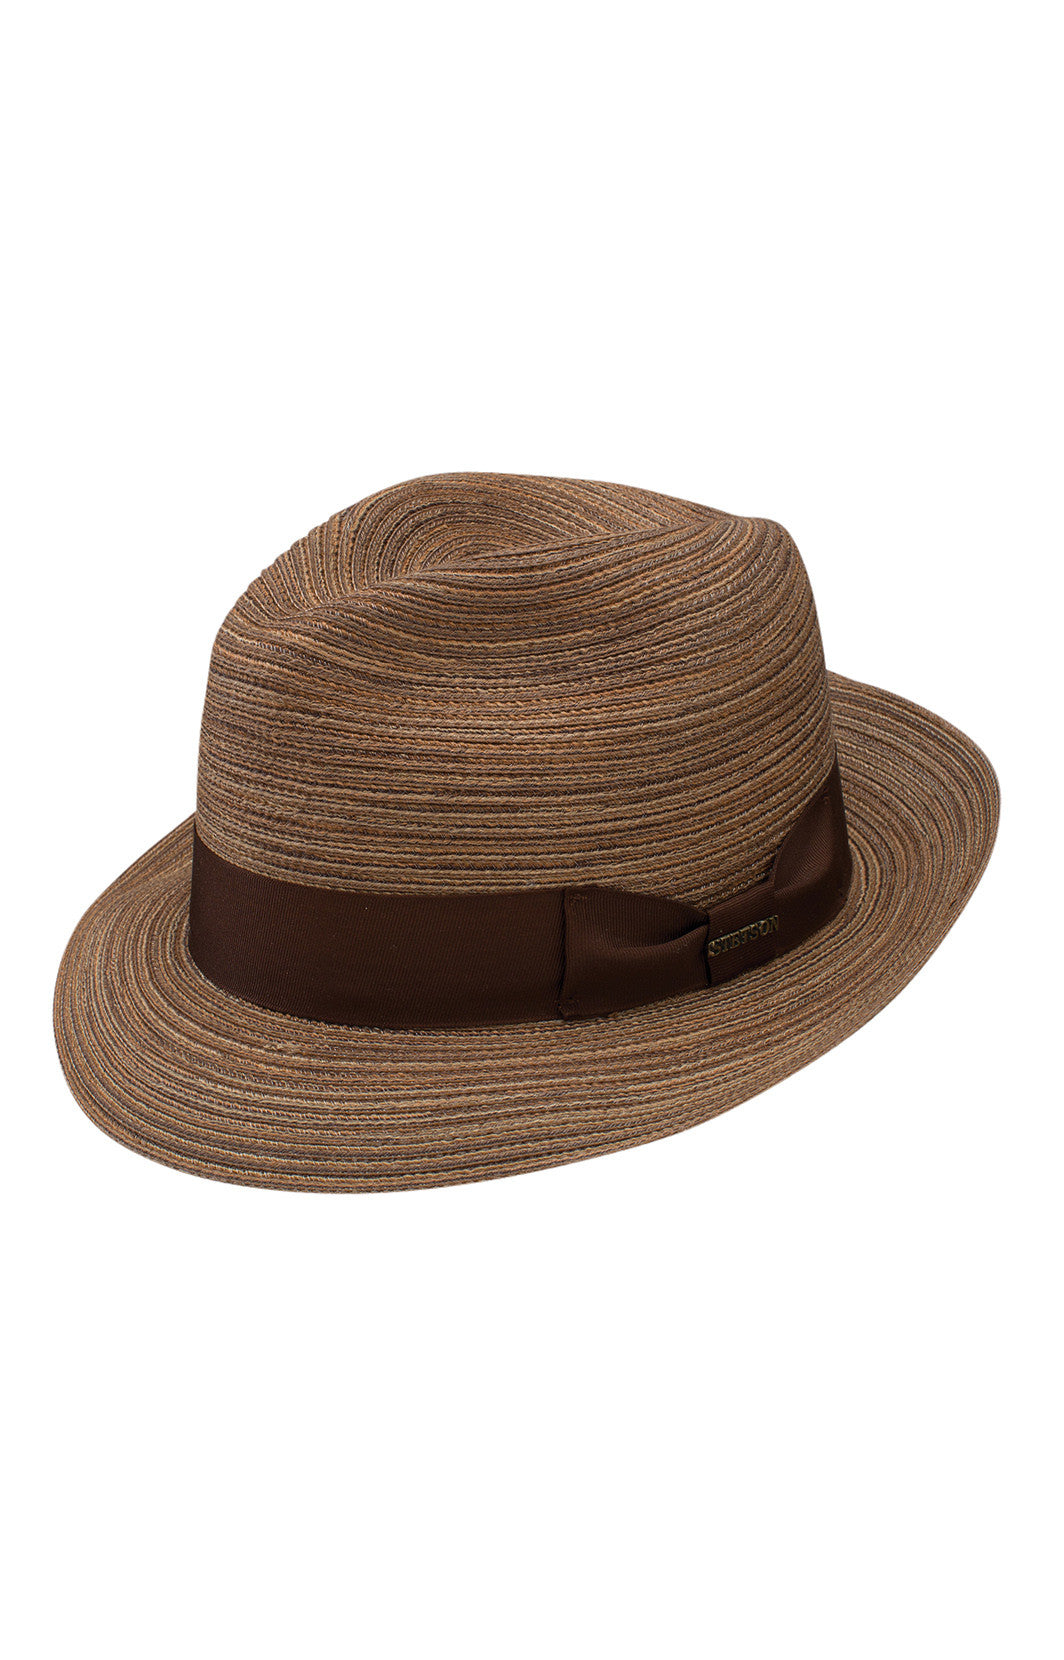 mens hats, straw hats, stetson hats, summer hat